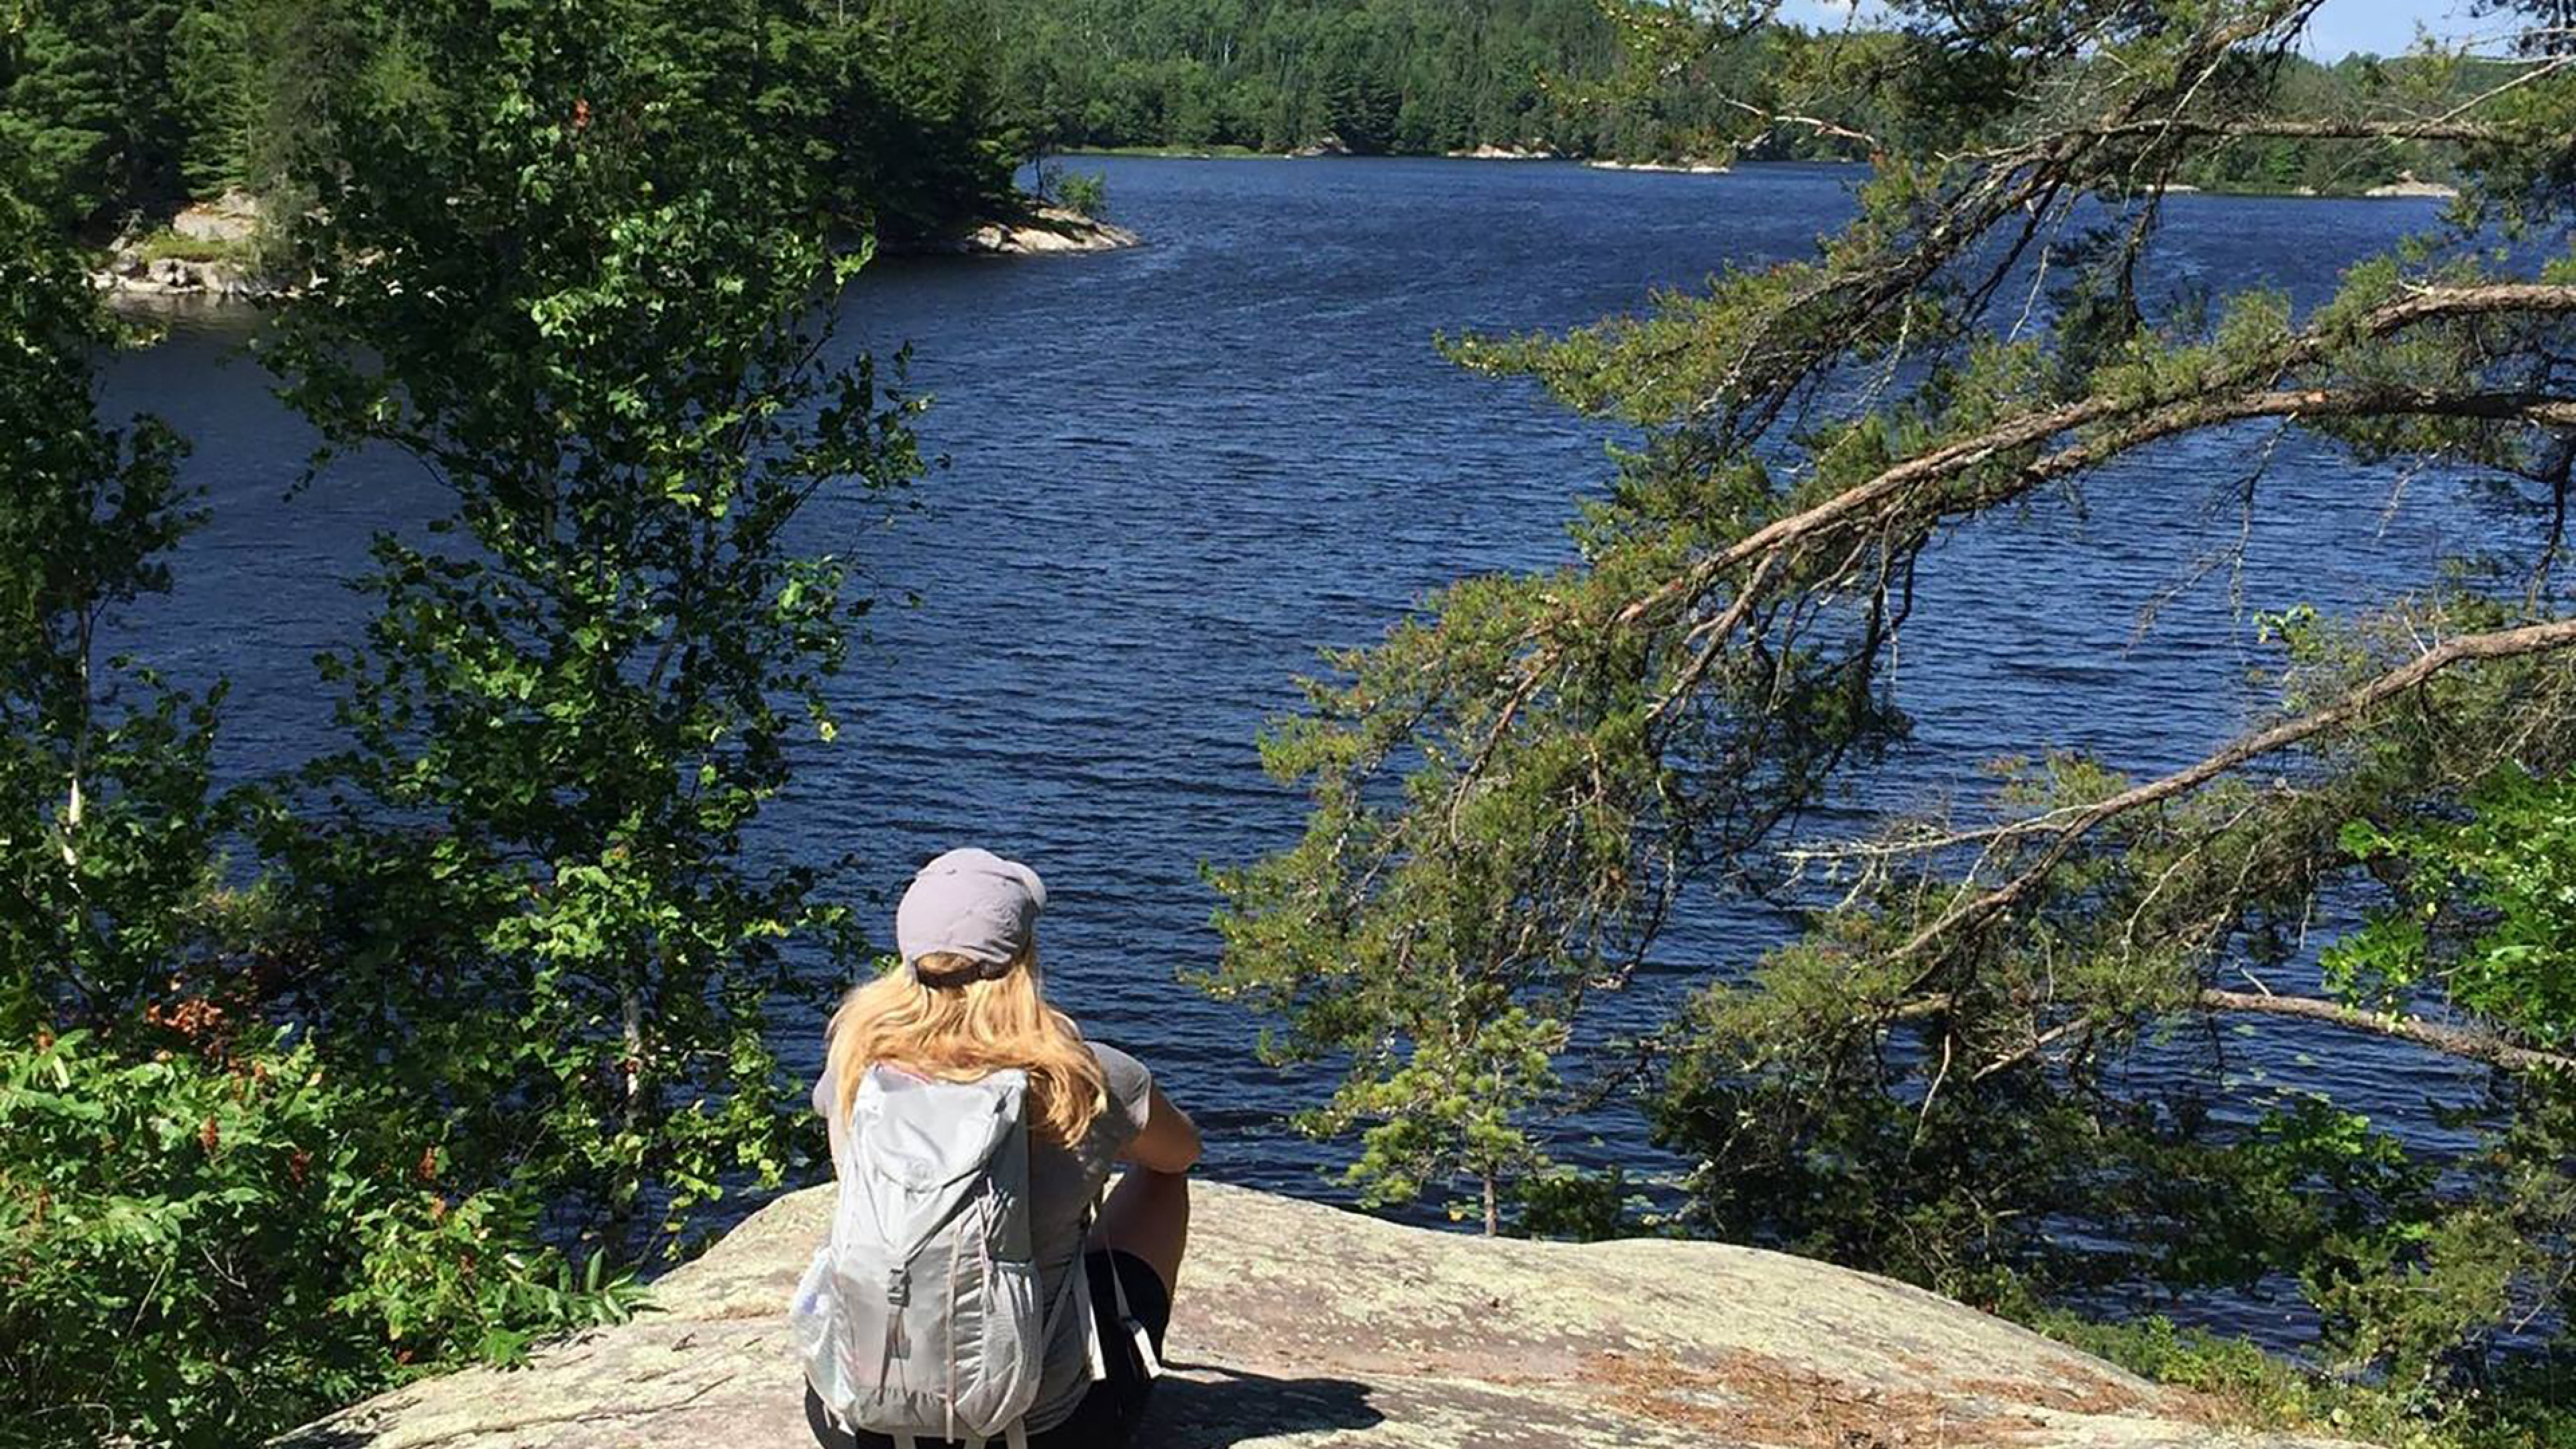 Christina sits and looks out on a lake from a high stony cliff